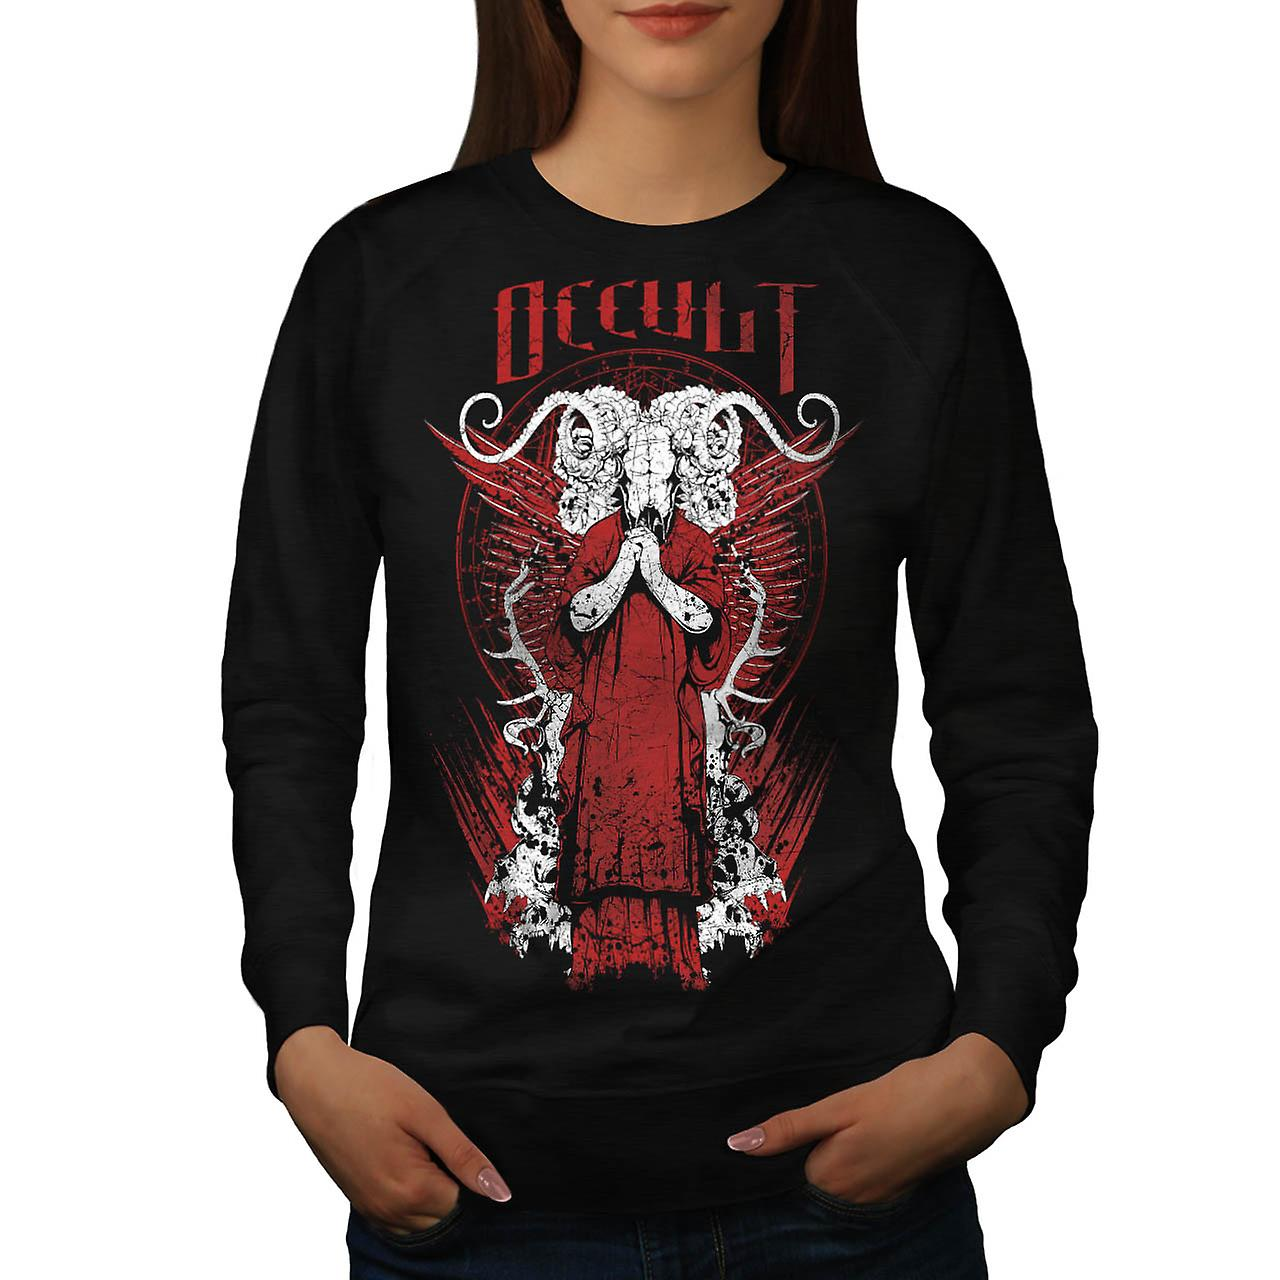 Occult Death Robe Horror Goat Women Black Sweatshirt | Wellcoda